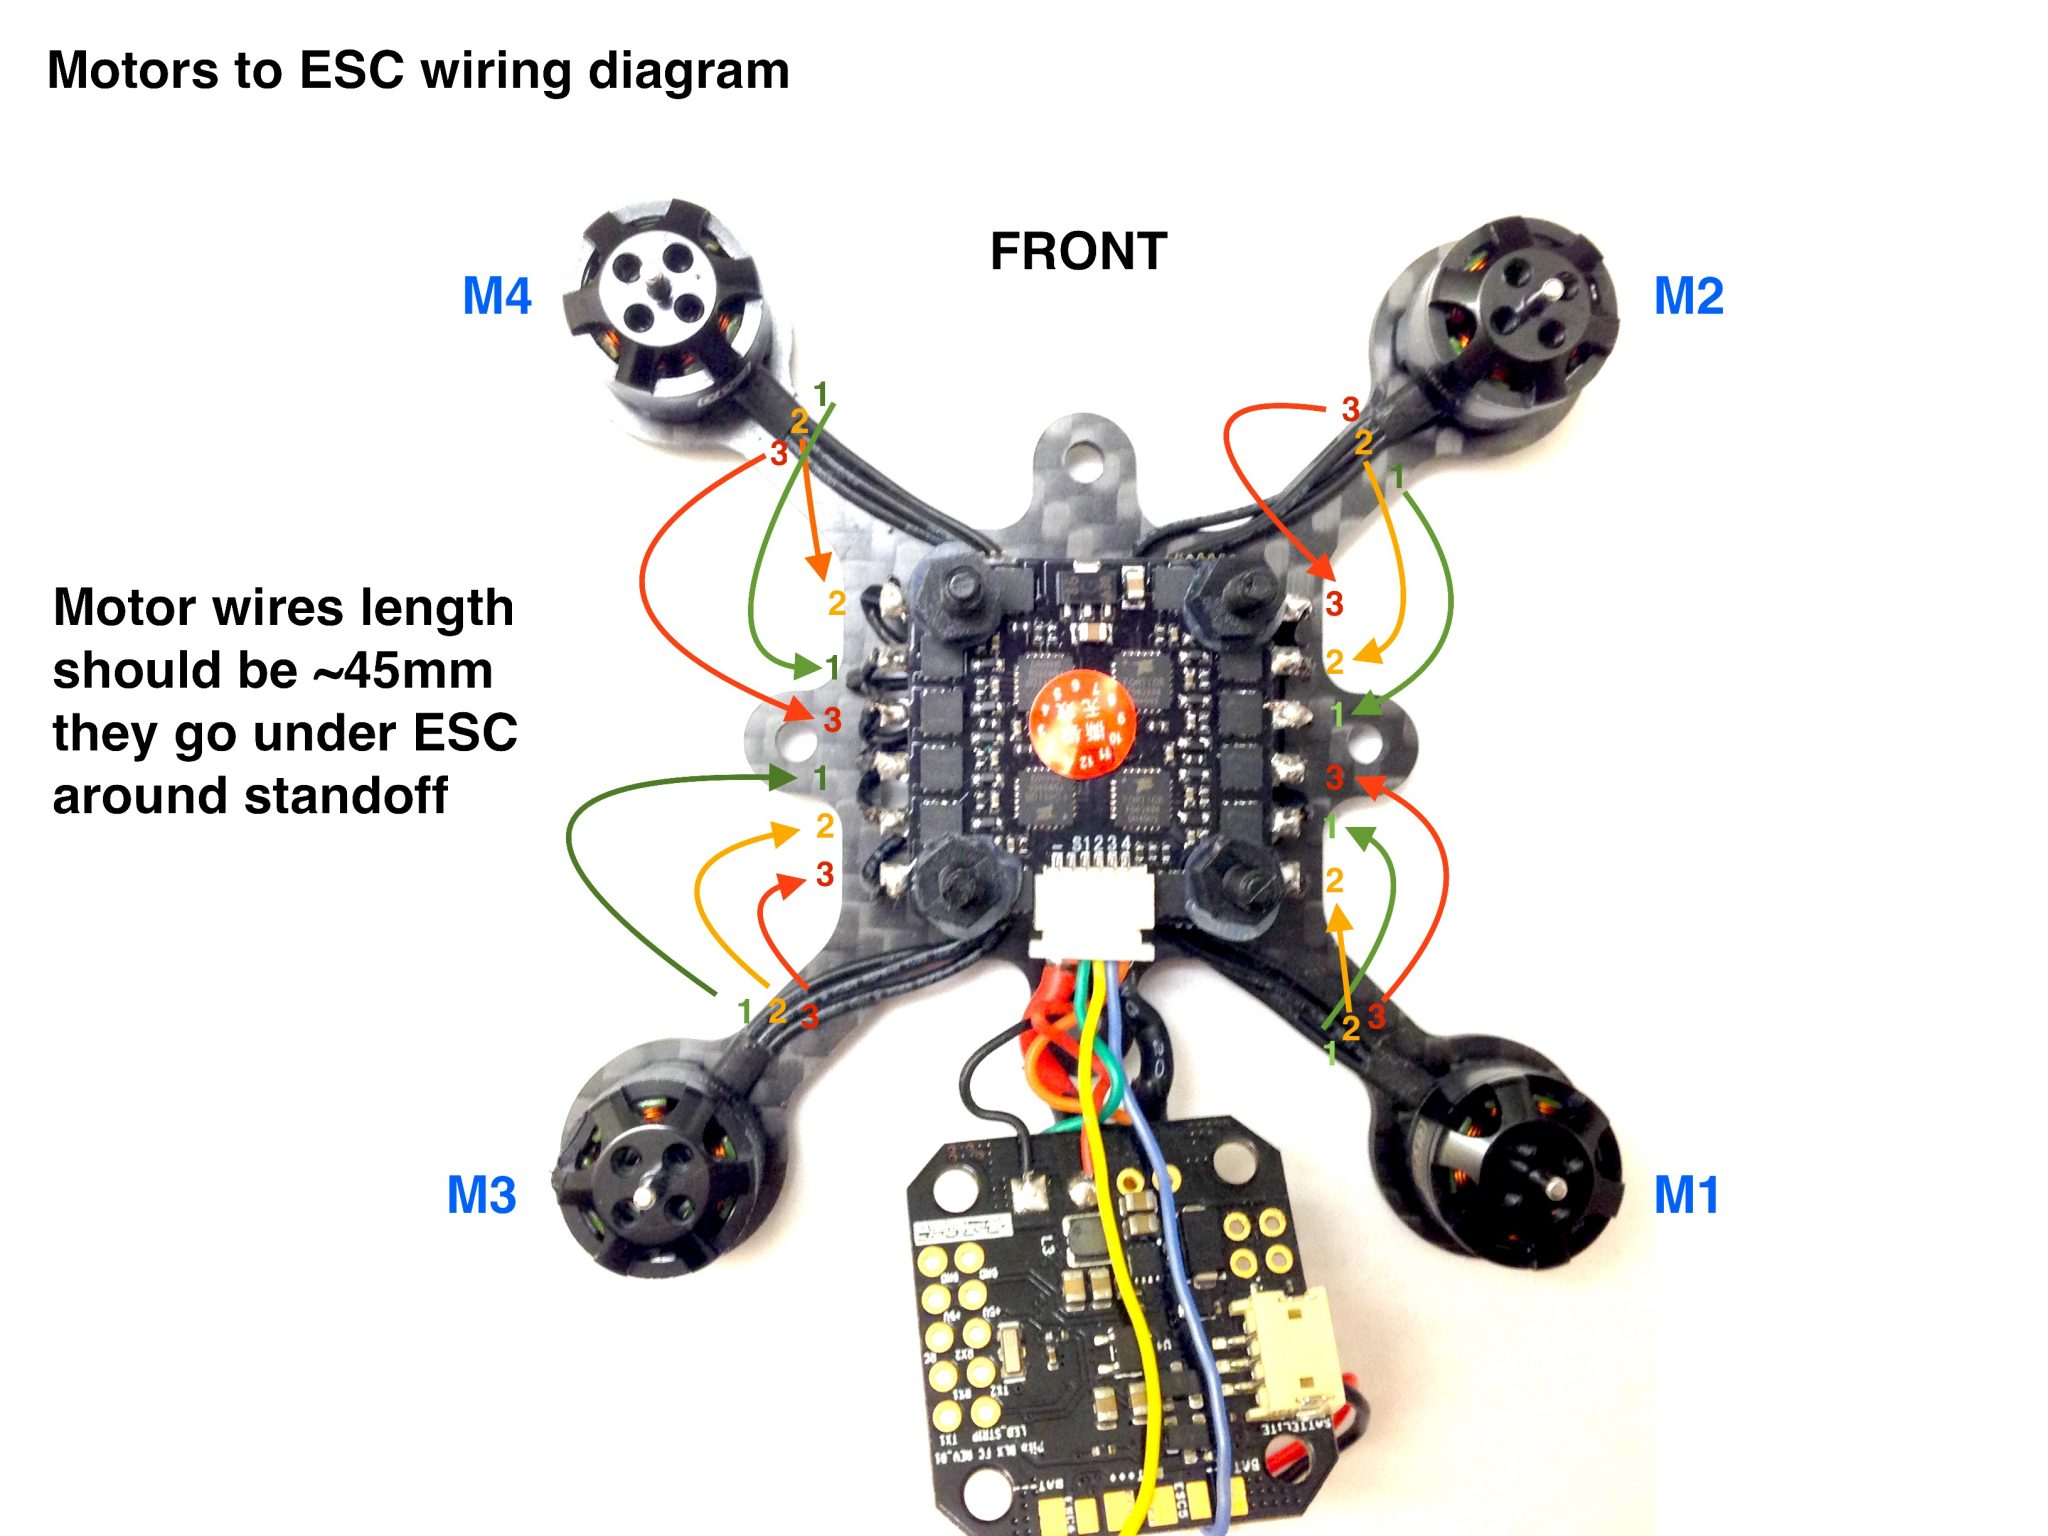 Drone Esc Wiring Diagram Circuit And Hub Rc Servo Flexrc Pico Core Motors Flex Rh Com Helicopter 1978 Gmc Ignition